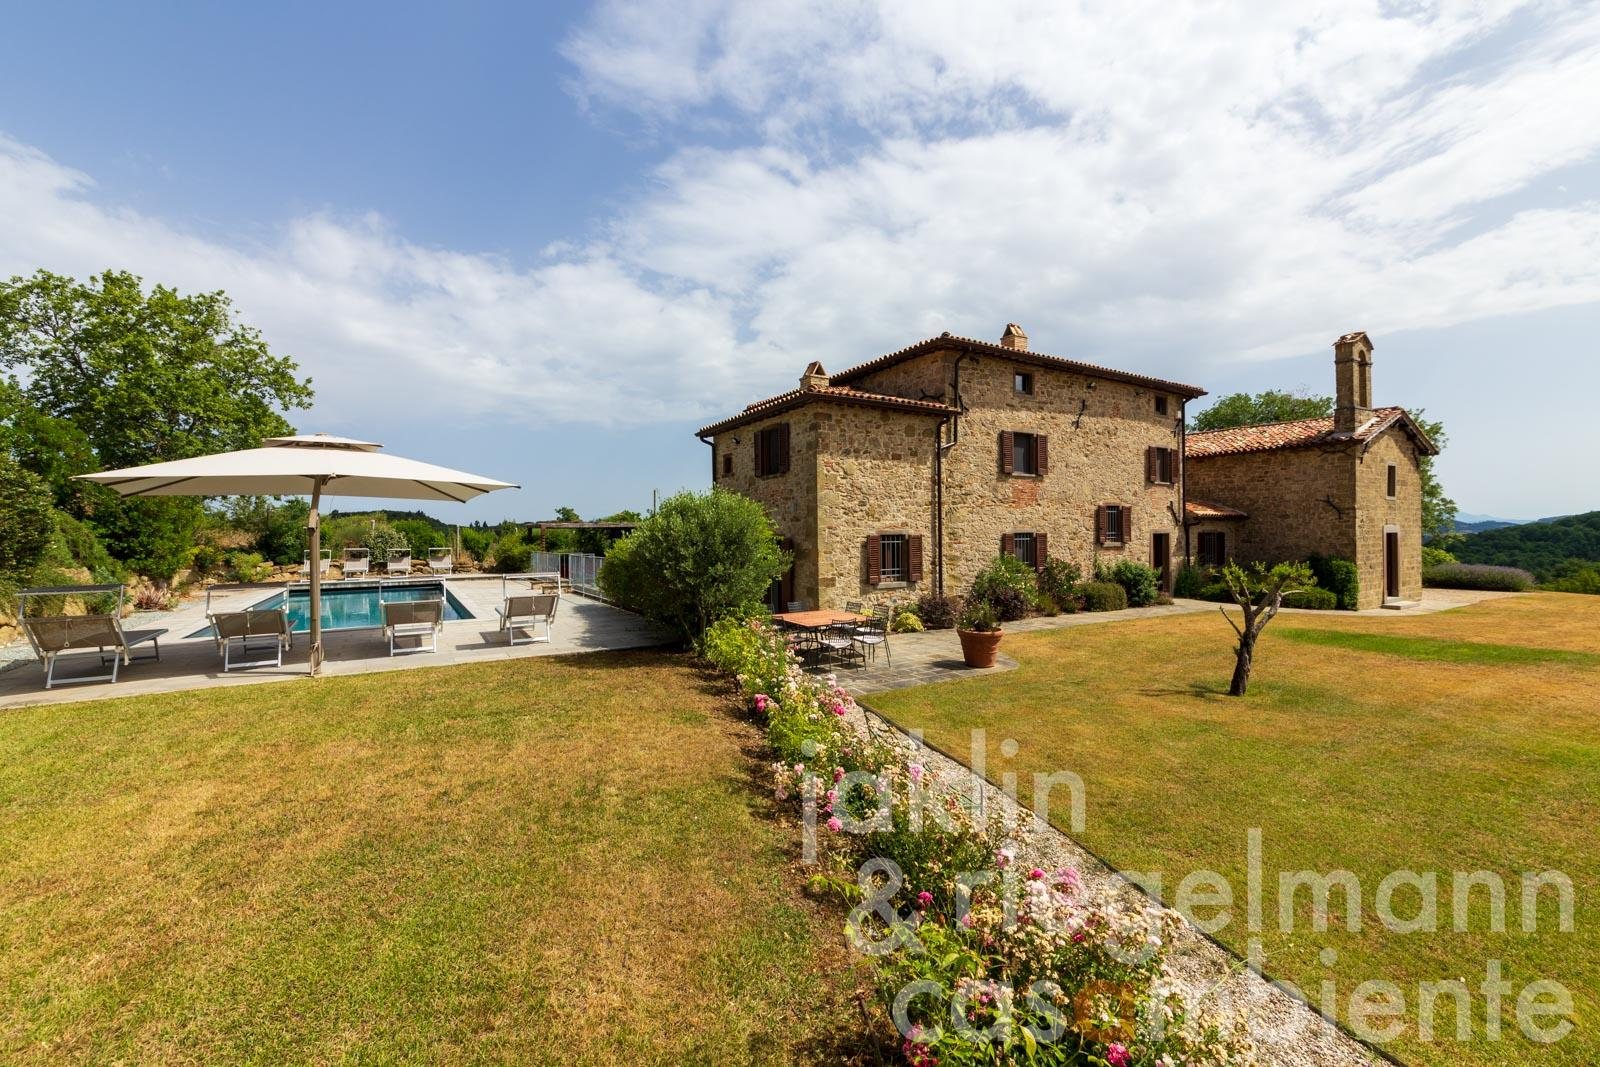 Restored church with sacristy, stone house and pool for sale in a splendid position in northern Umbria